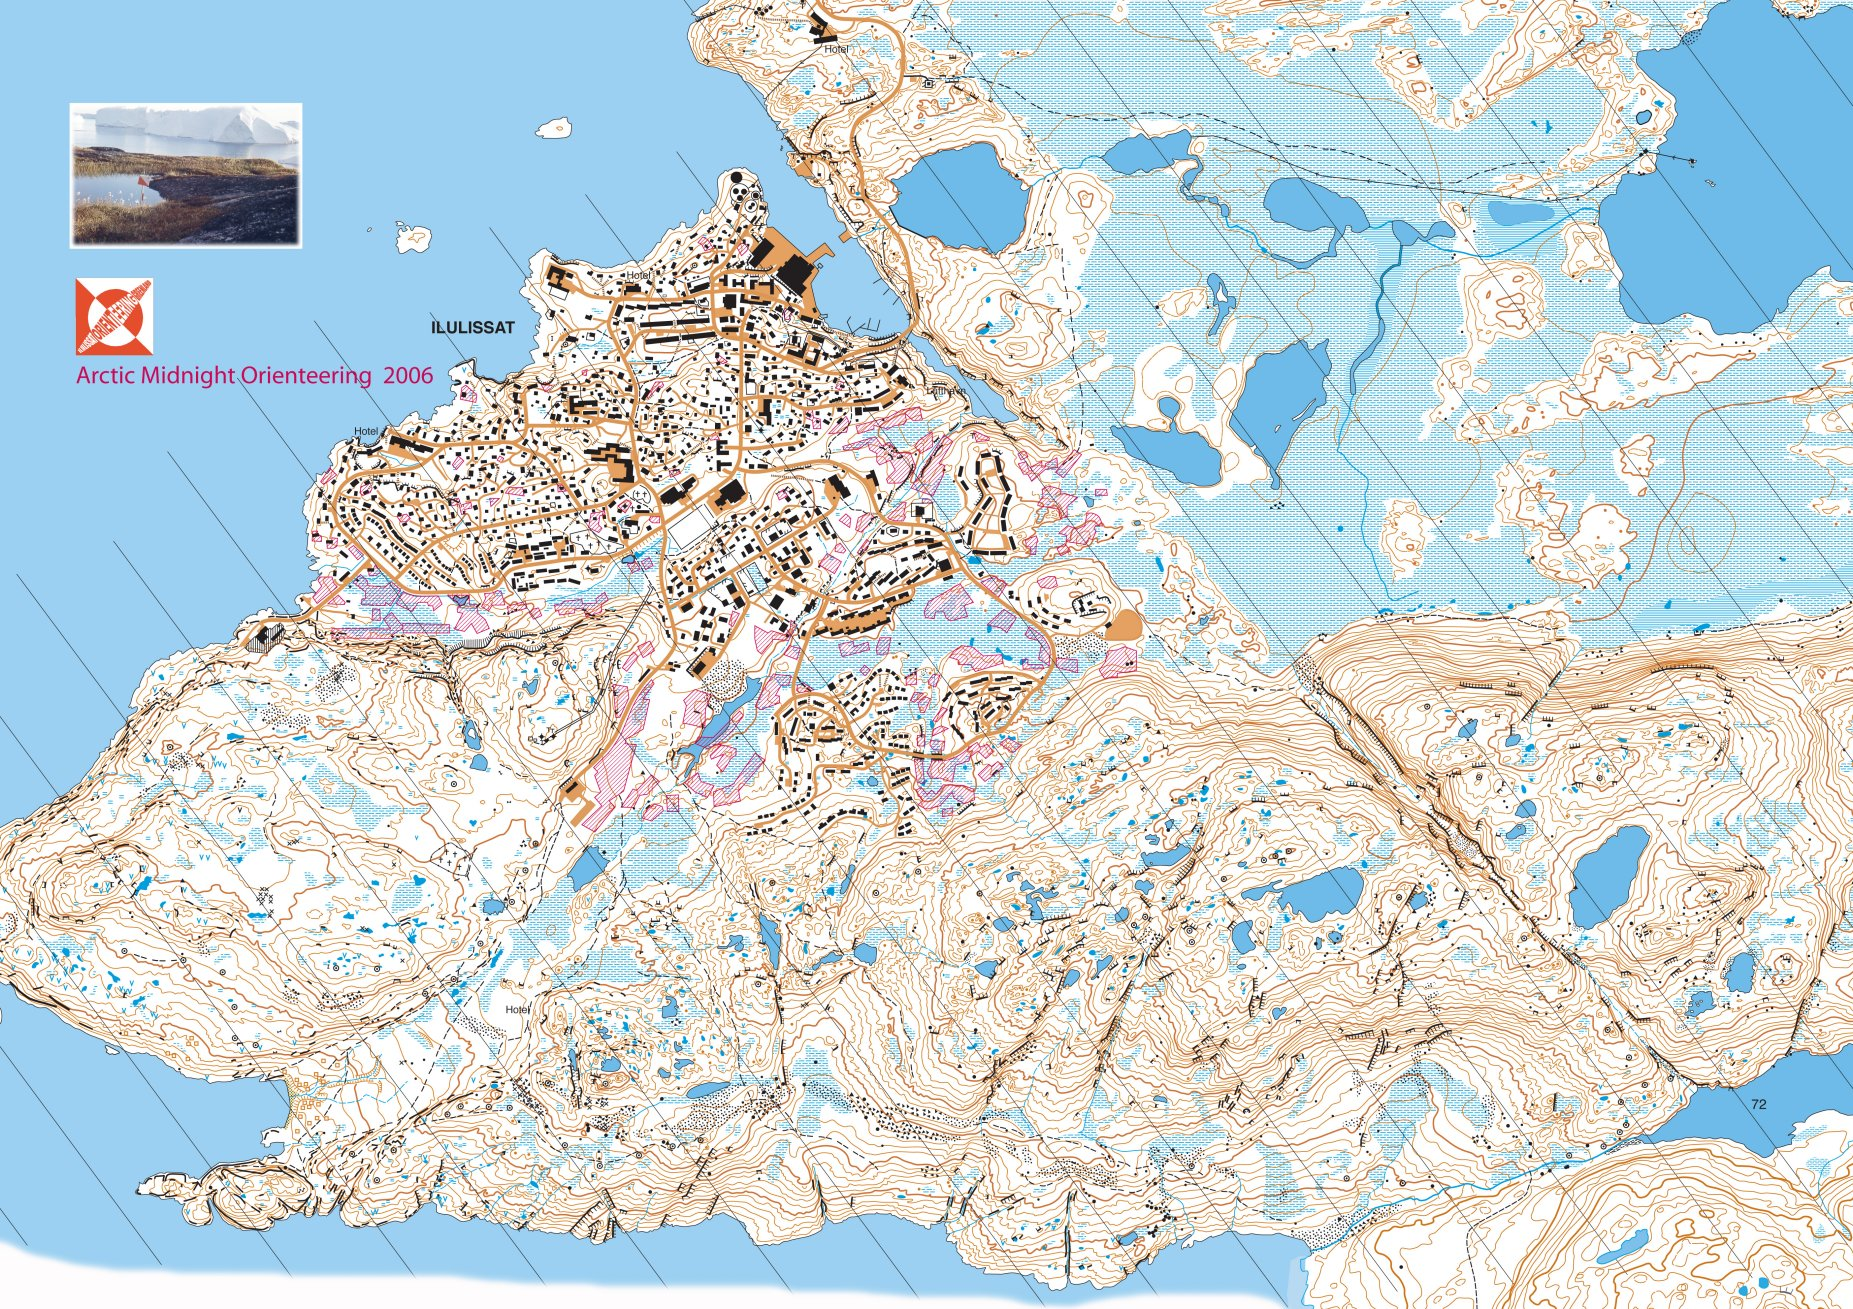 Orienteering map in Greenland